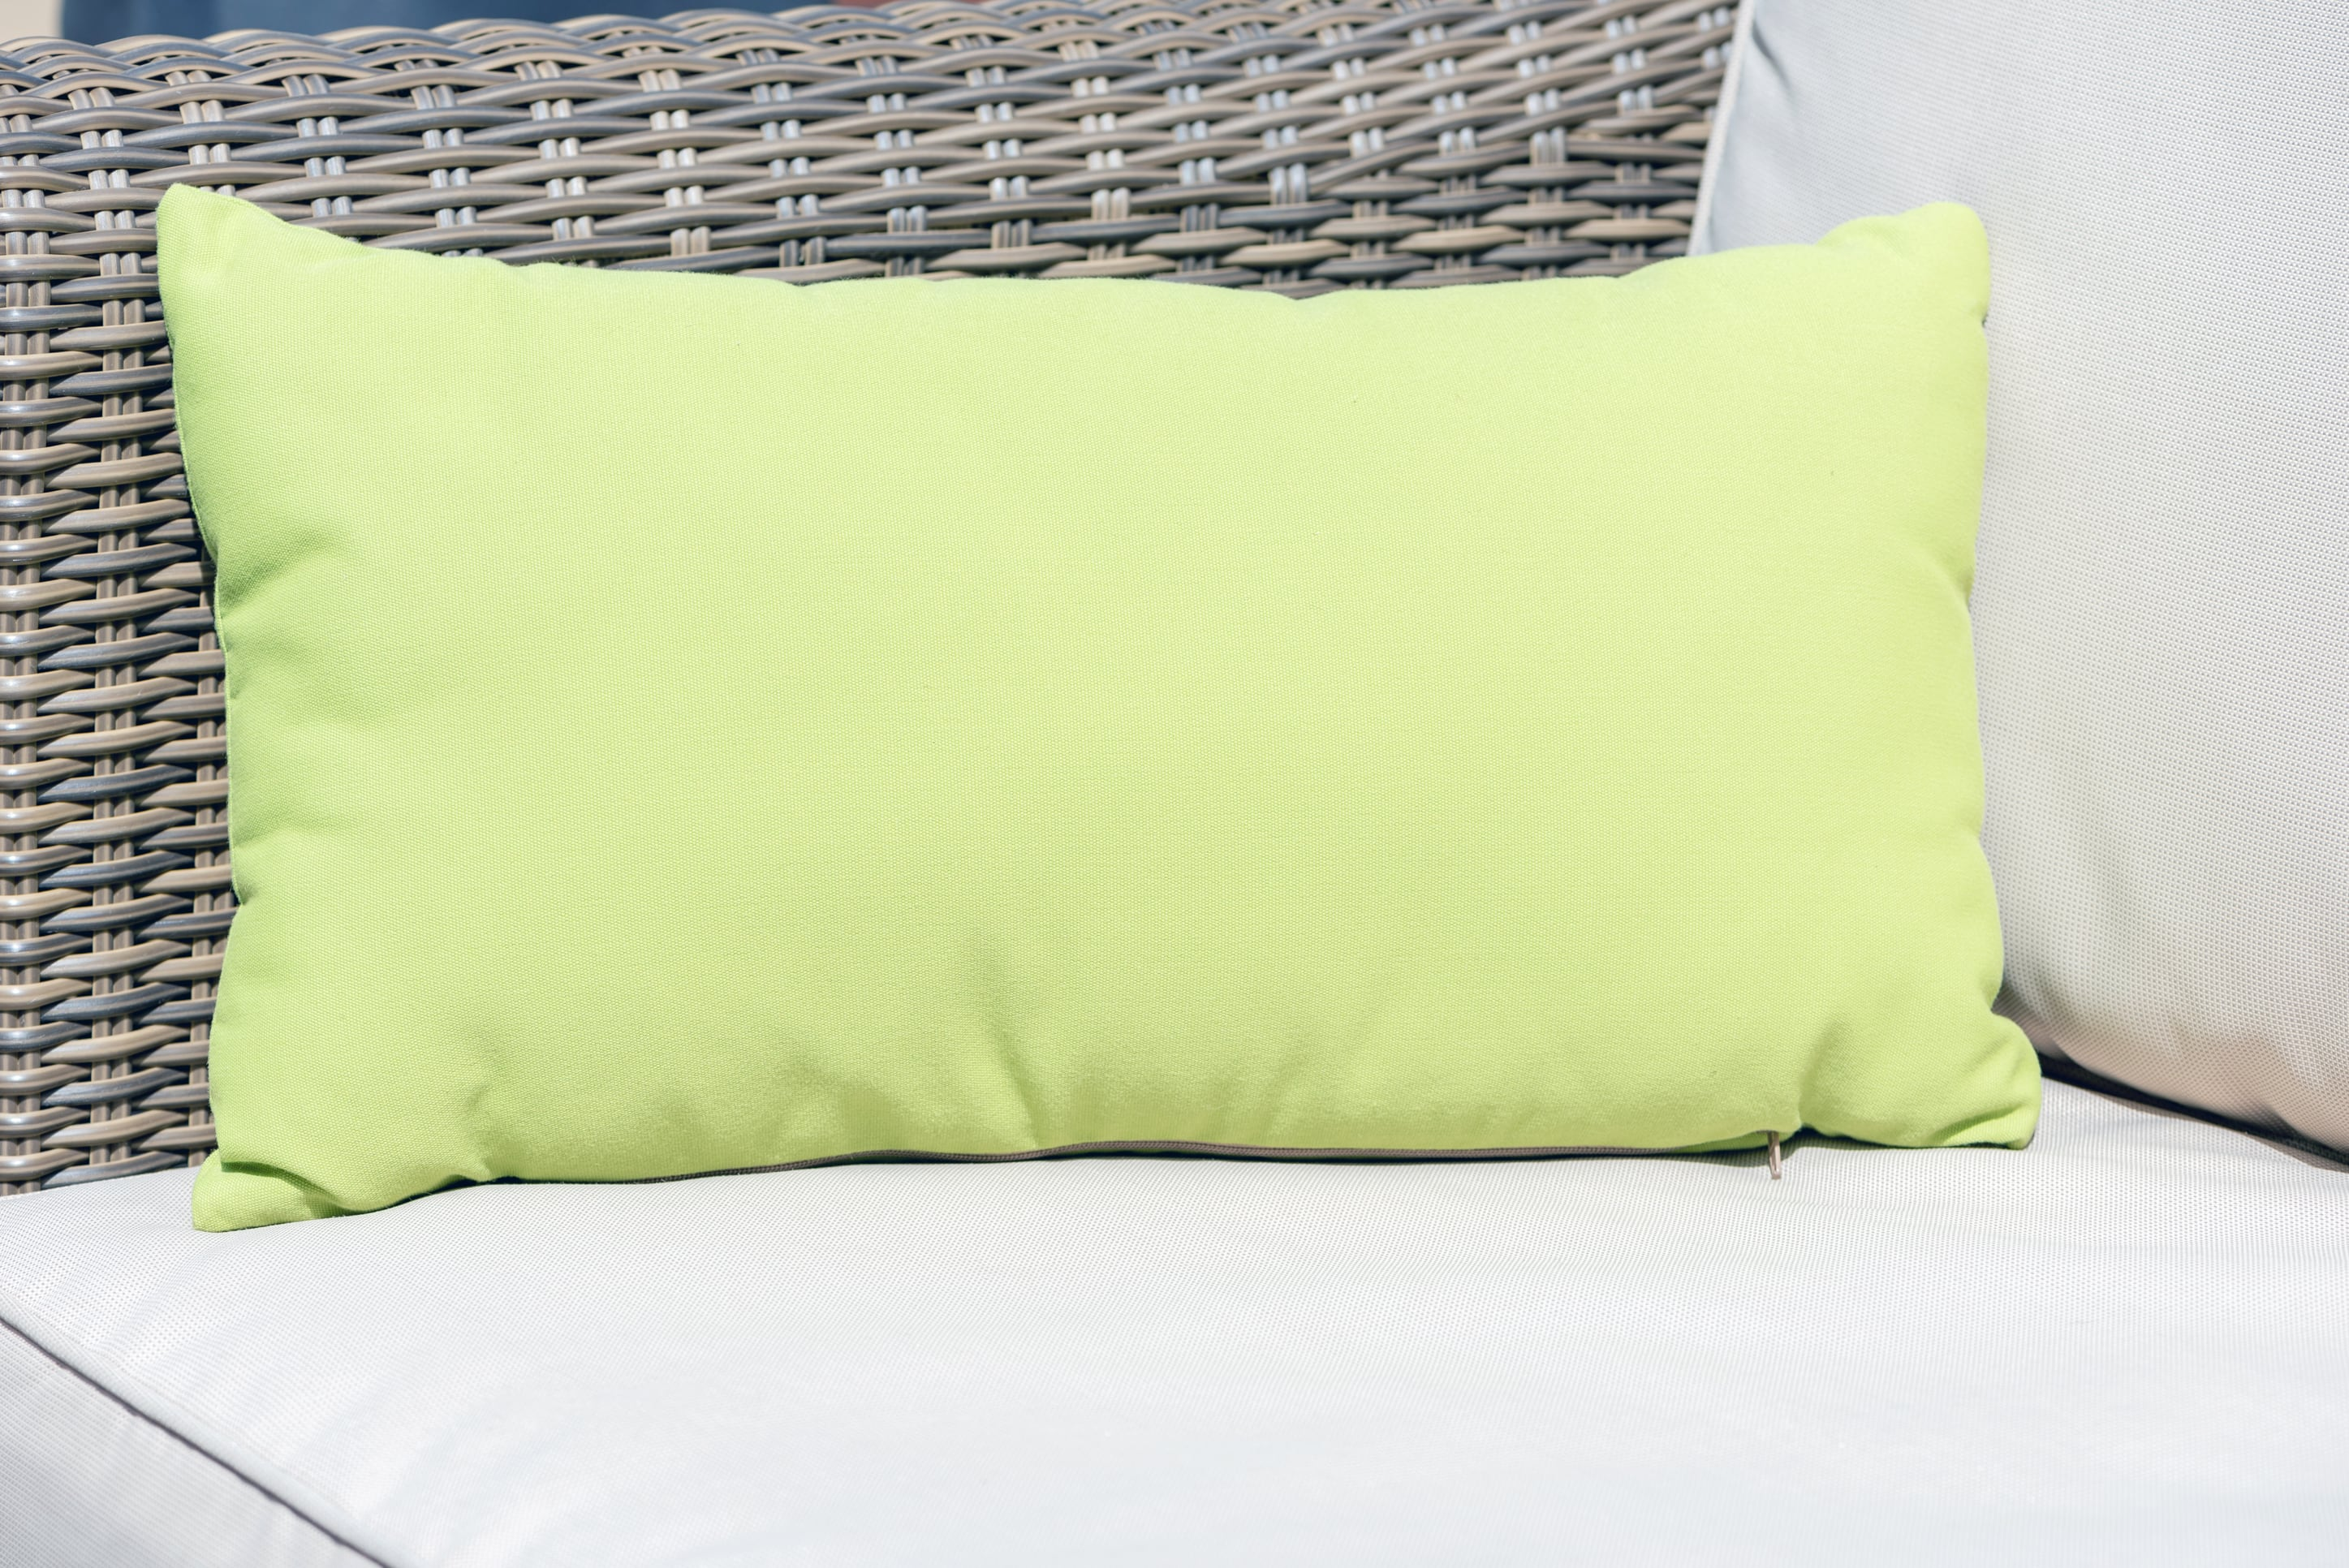 Luxury Cushion in Green Bean Bag Cushion armadillosun